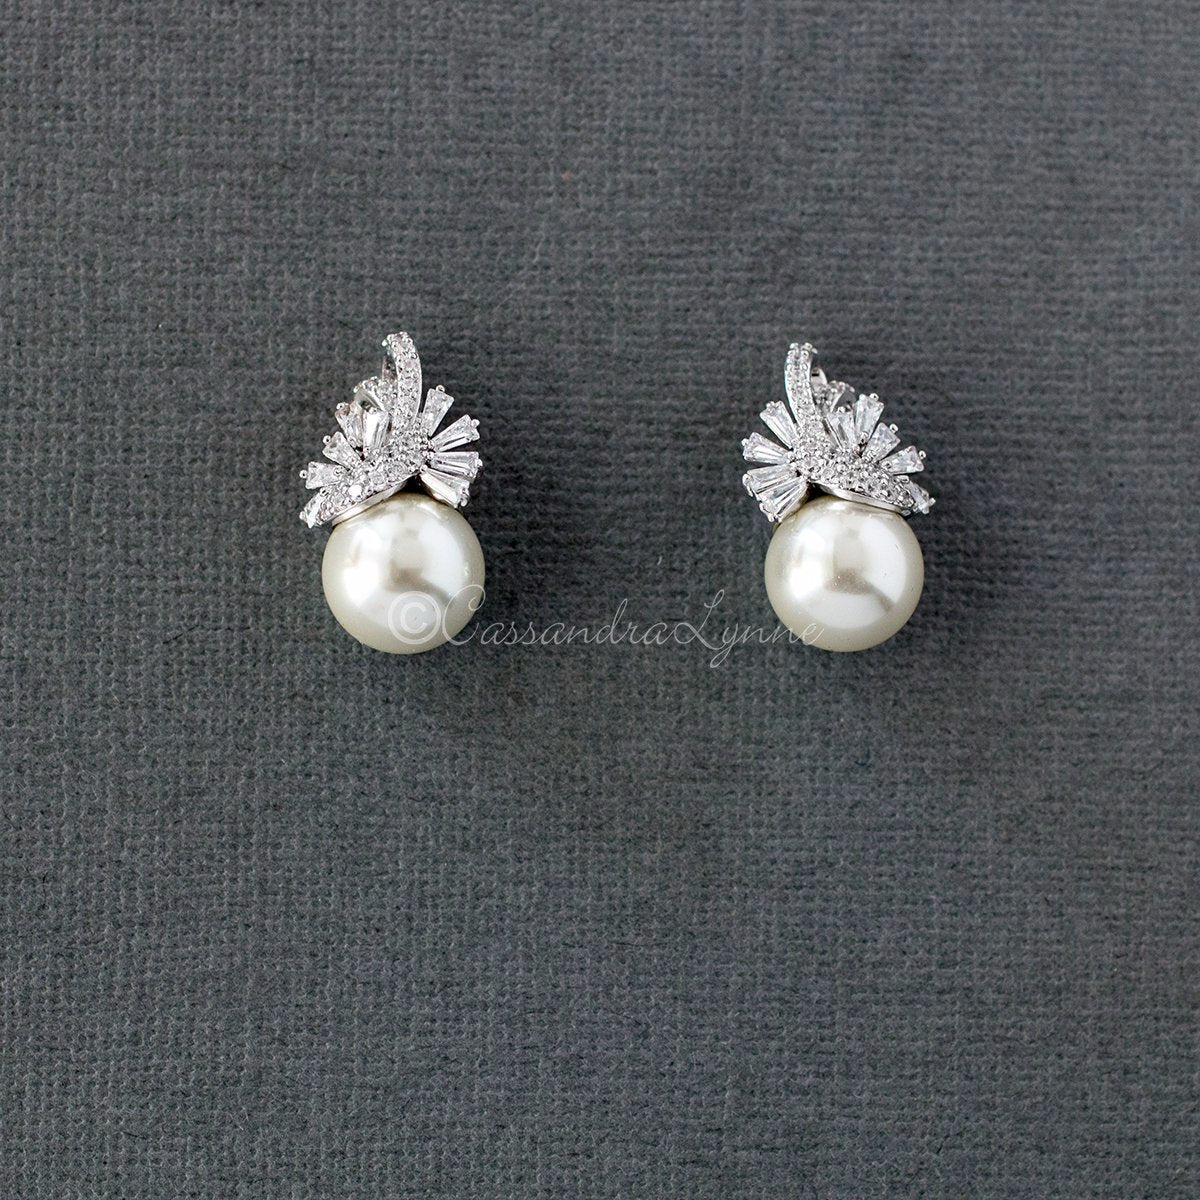 Vintage Pearl and CZ Wedding Jewelry Studs Silver